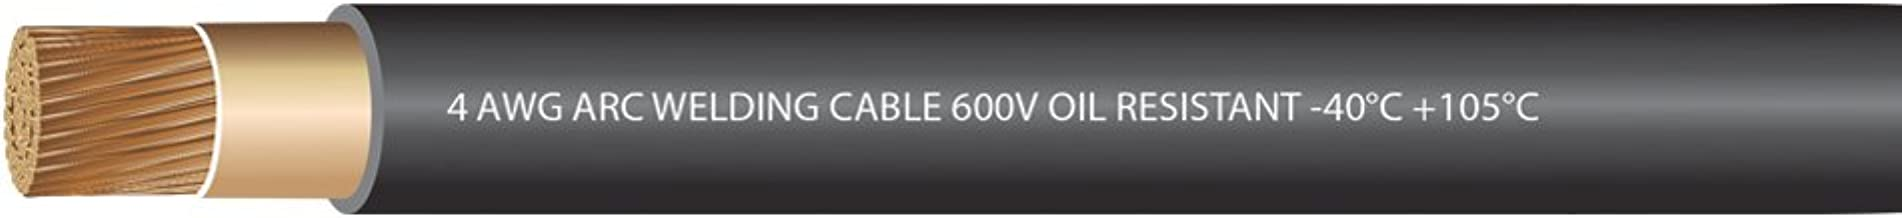 EWCS 4 Gauge Premium Extra Flexible Welding Cable 600 Volt - Black - 25 Feet - Made in the USA